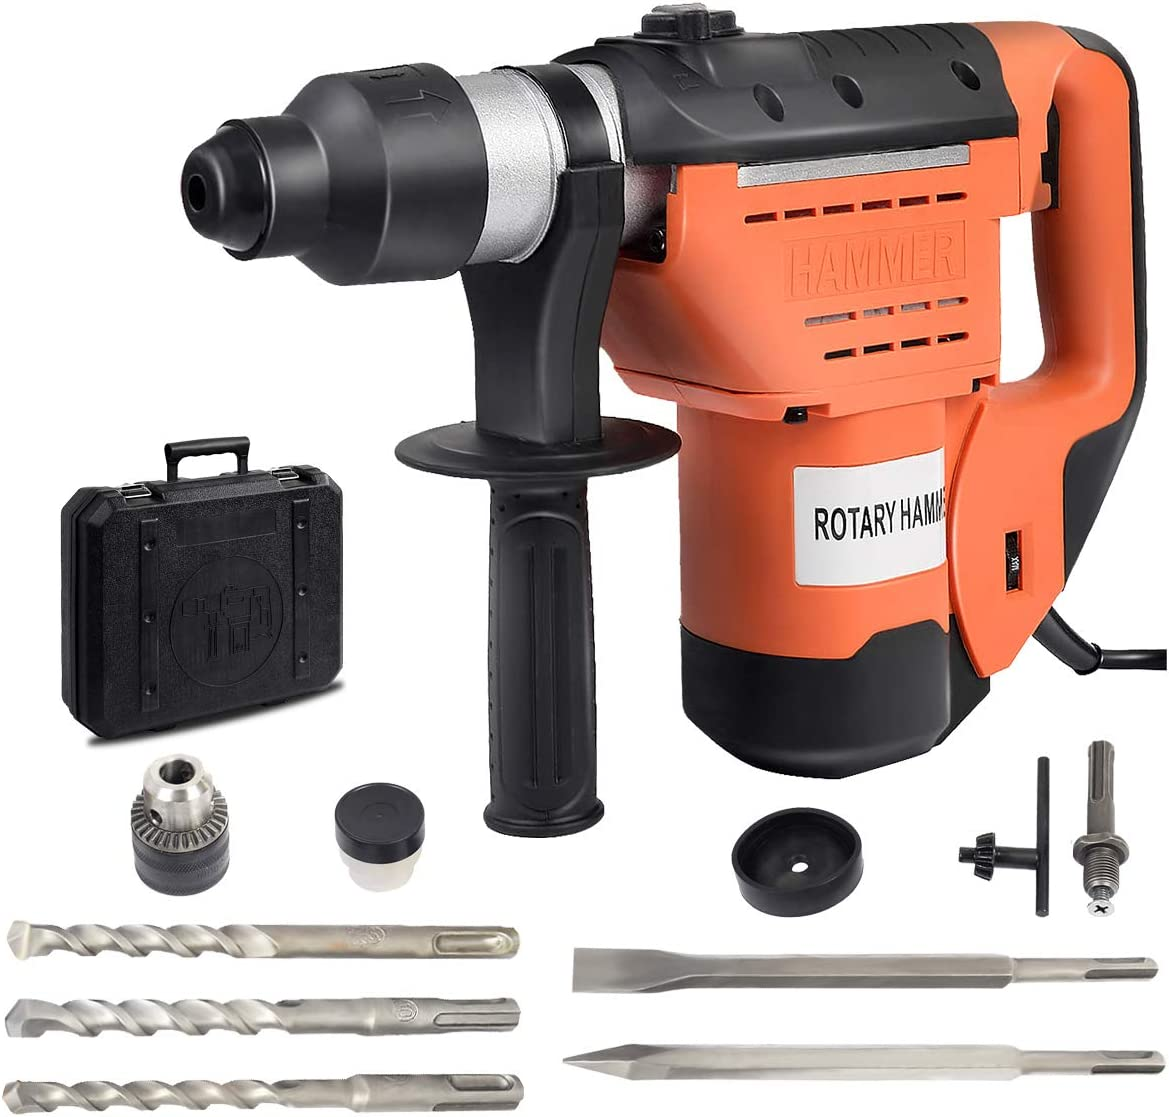 Goplus SDS Rotary Hammer, 1-1 2 Electric Rotary Hammer Drill with Vibration Control, 3 Drill Functions, Plus Demolition Bits, Includes 3 Drill Bits,Point and Flat Chisel with Case Orange